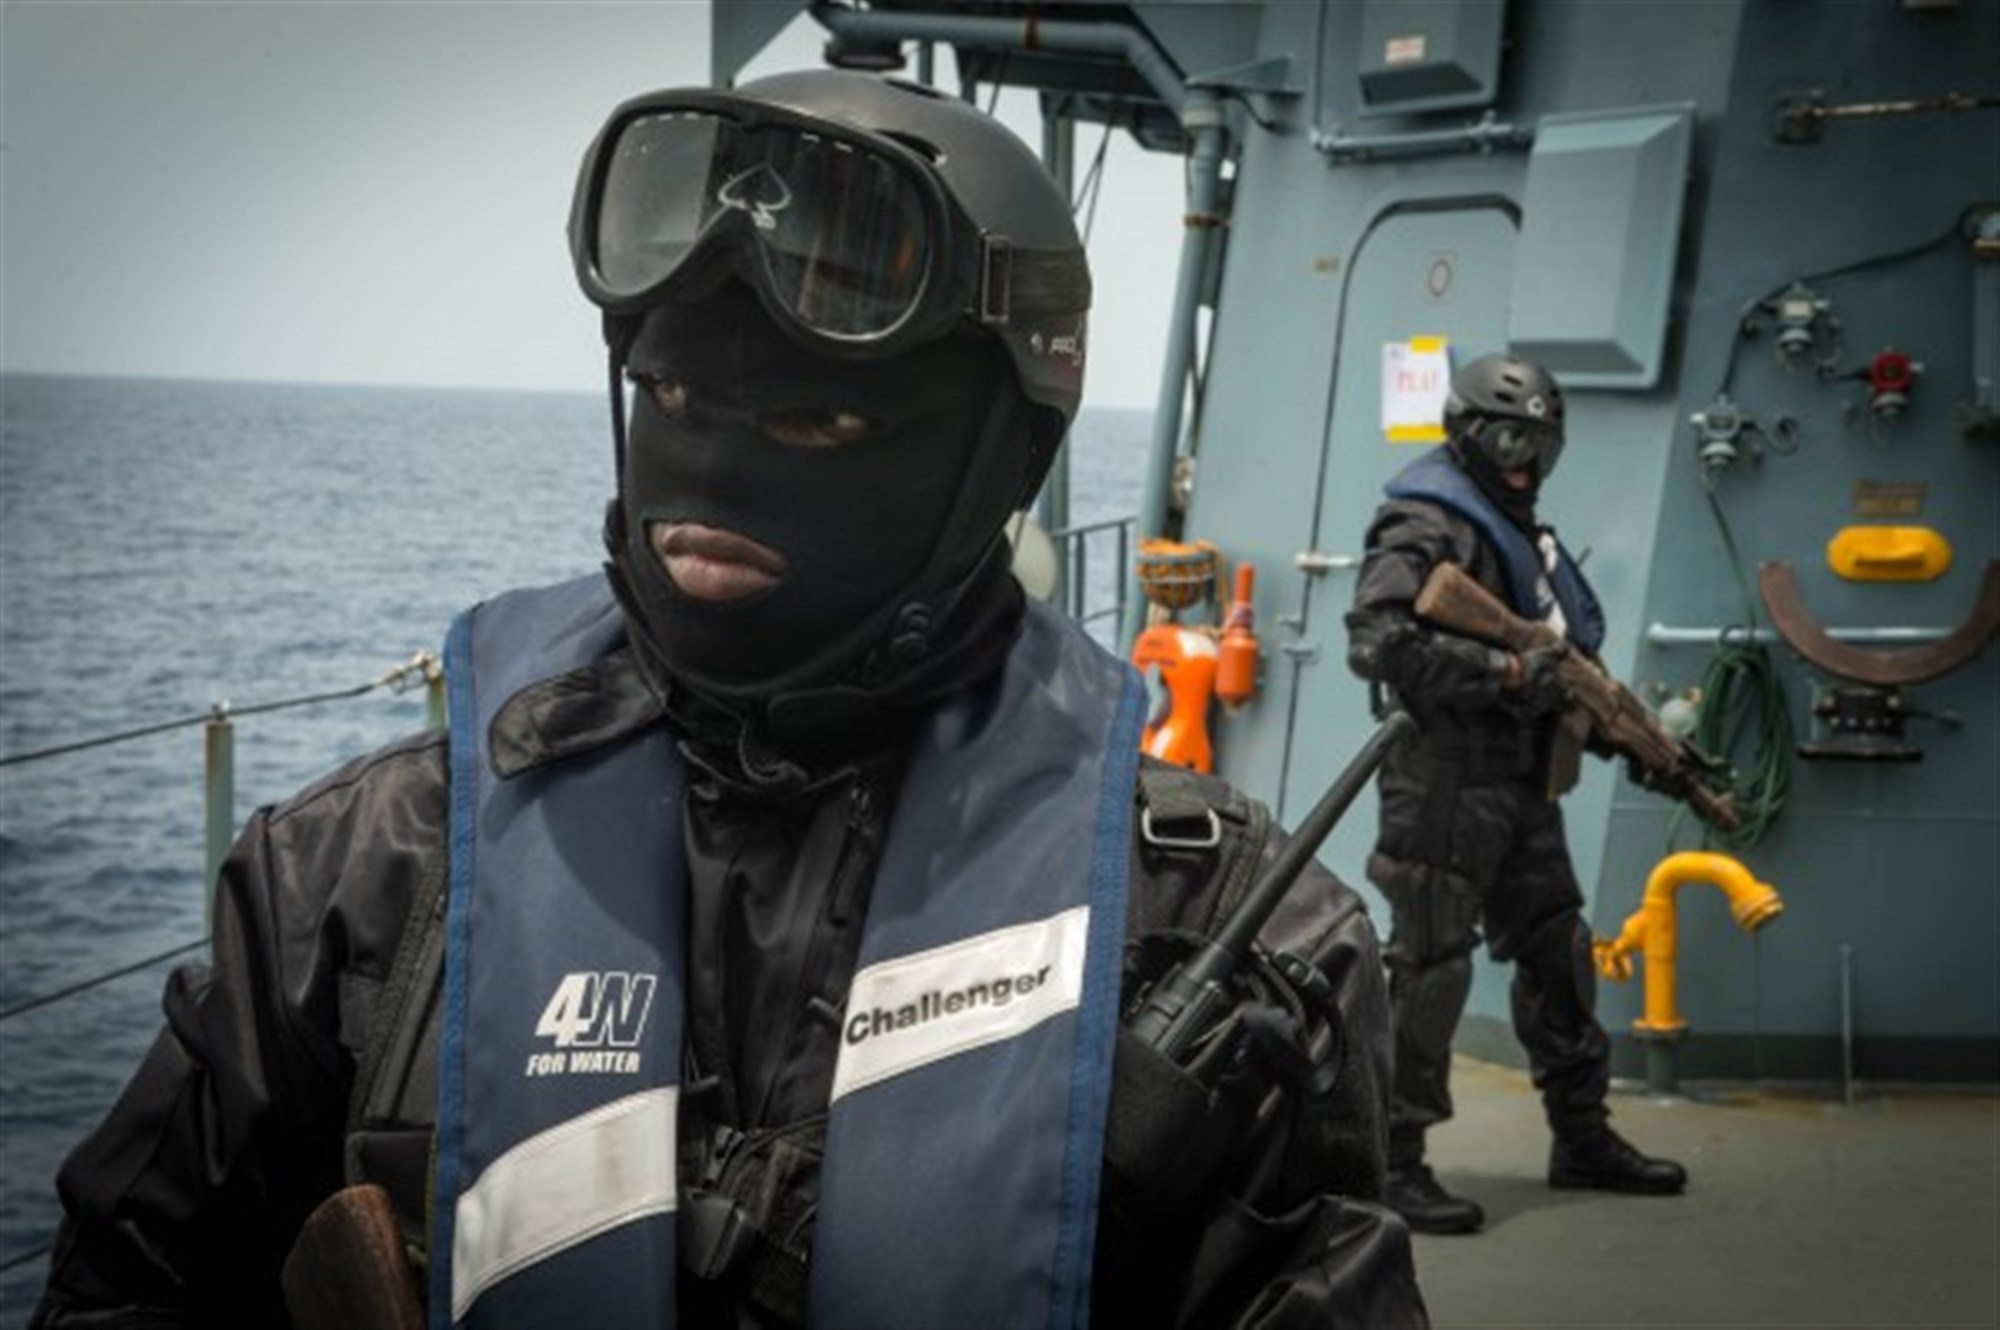 Ivory Coast boarding team members establish perimeter security aboard the German navy vessel FGS Brandenburg (F215) March 21, 2015 during an illegal fishing training scenario as part of Obangame Express 2015. Obangame Express is a U.S. Africa Command-sponsored multinational maritime exercise designed to increase maritime safety and security in the Gulf of Guinea. (U.S. Army photo by Specialist Raul Pacheco/Released)